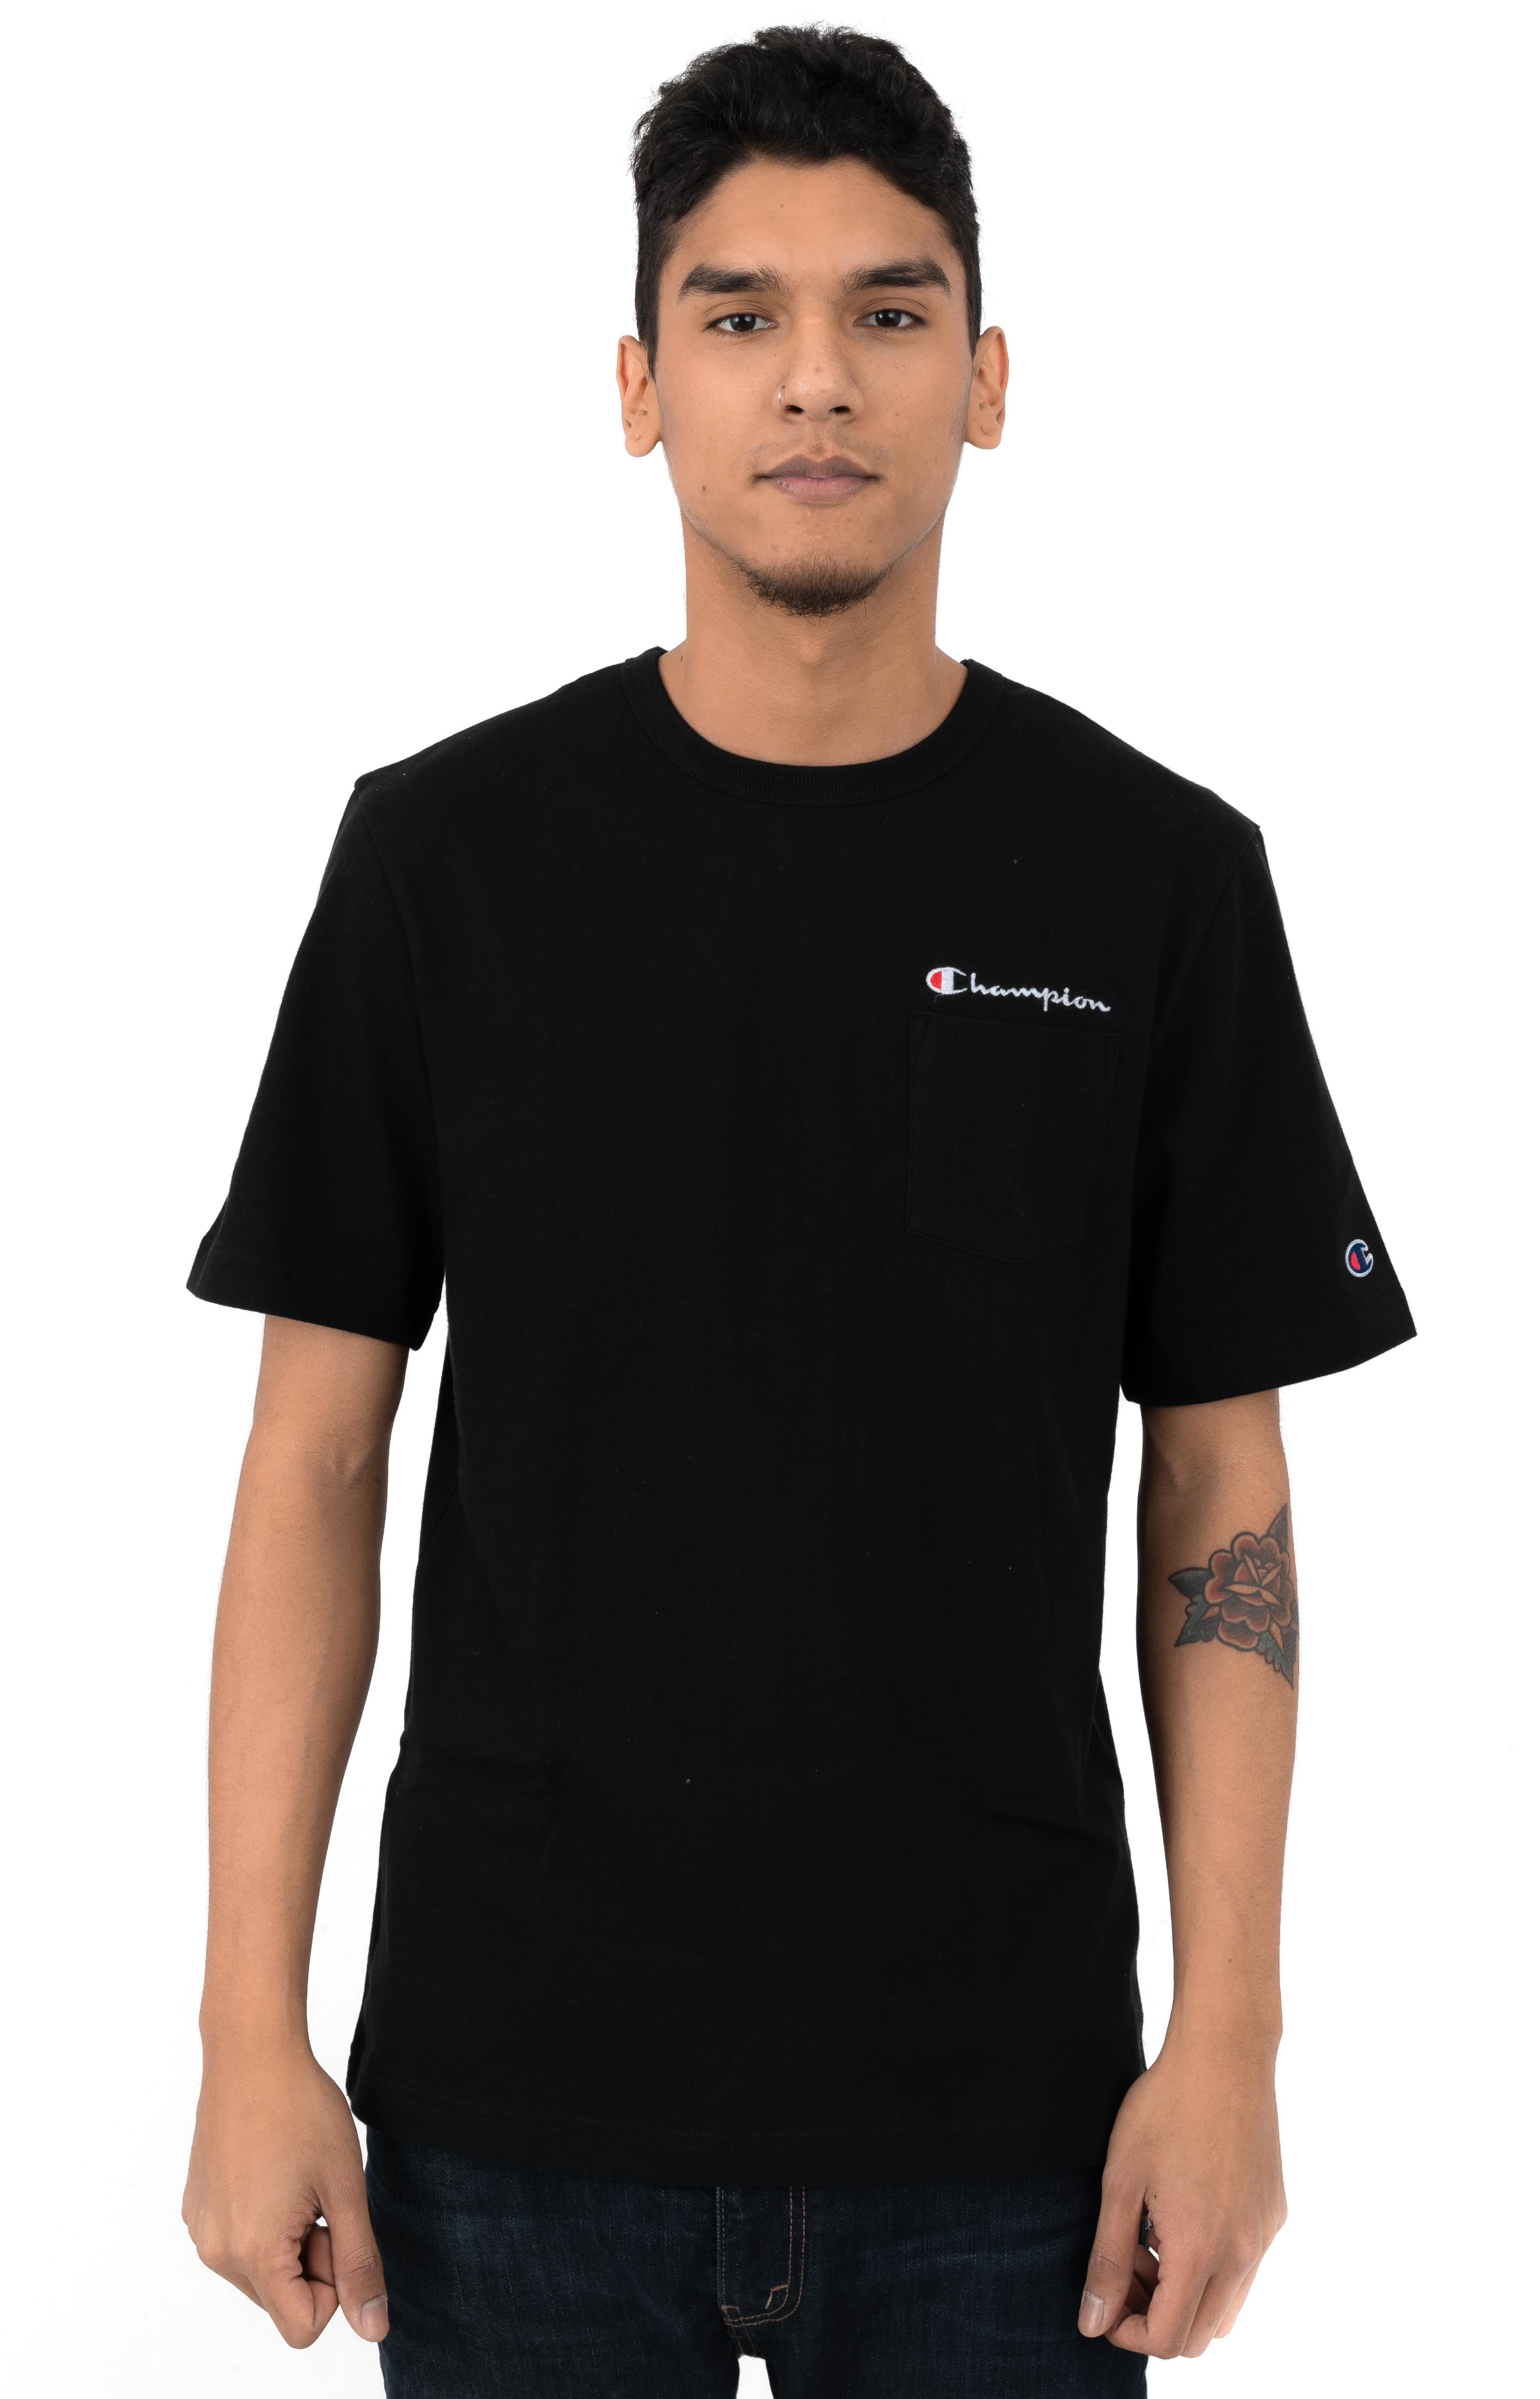 Heritage Pocket T-Shirt - Black